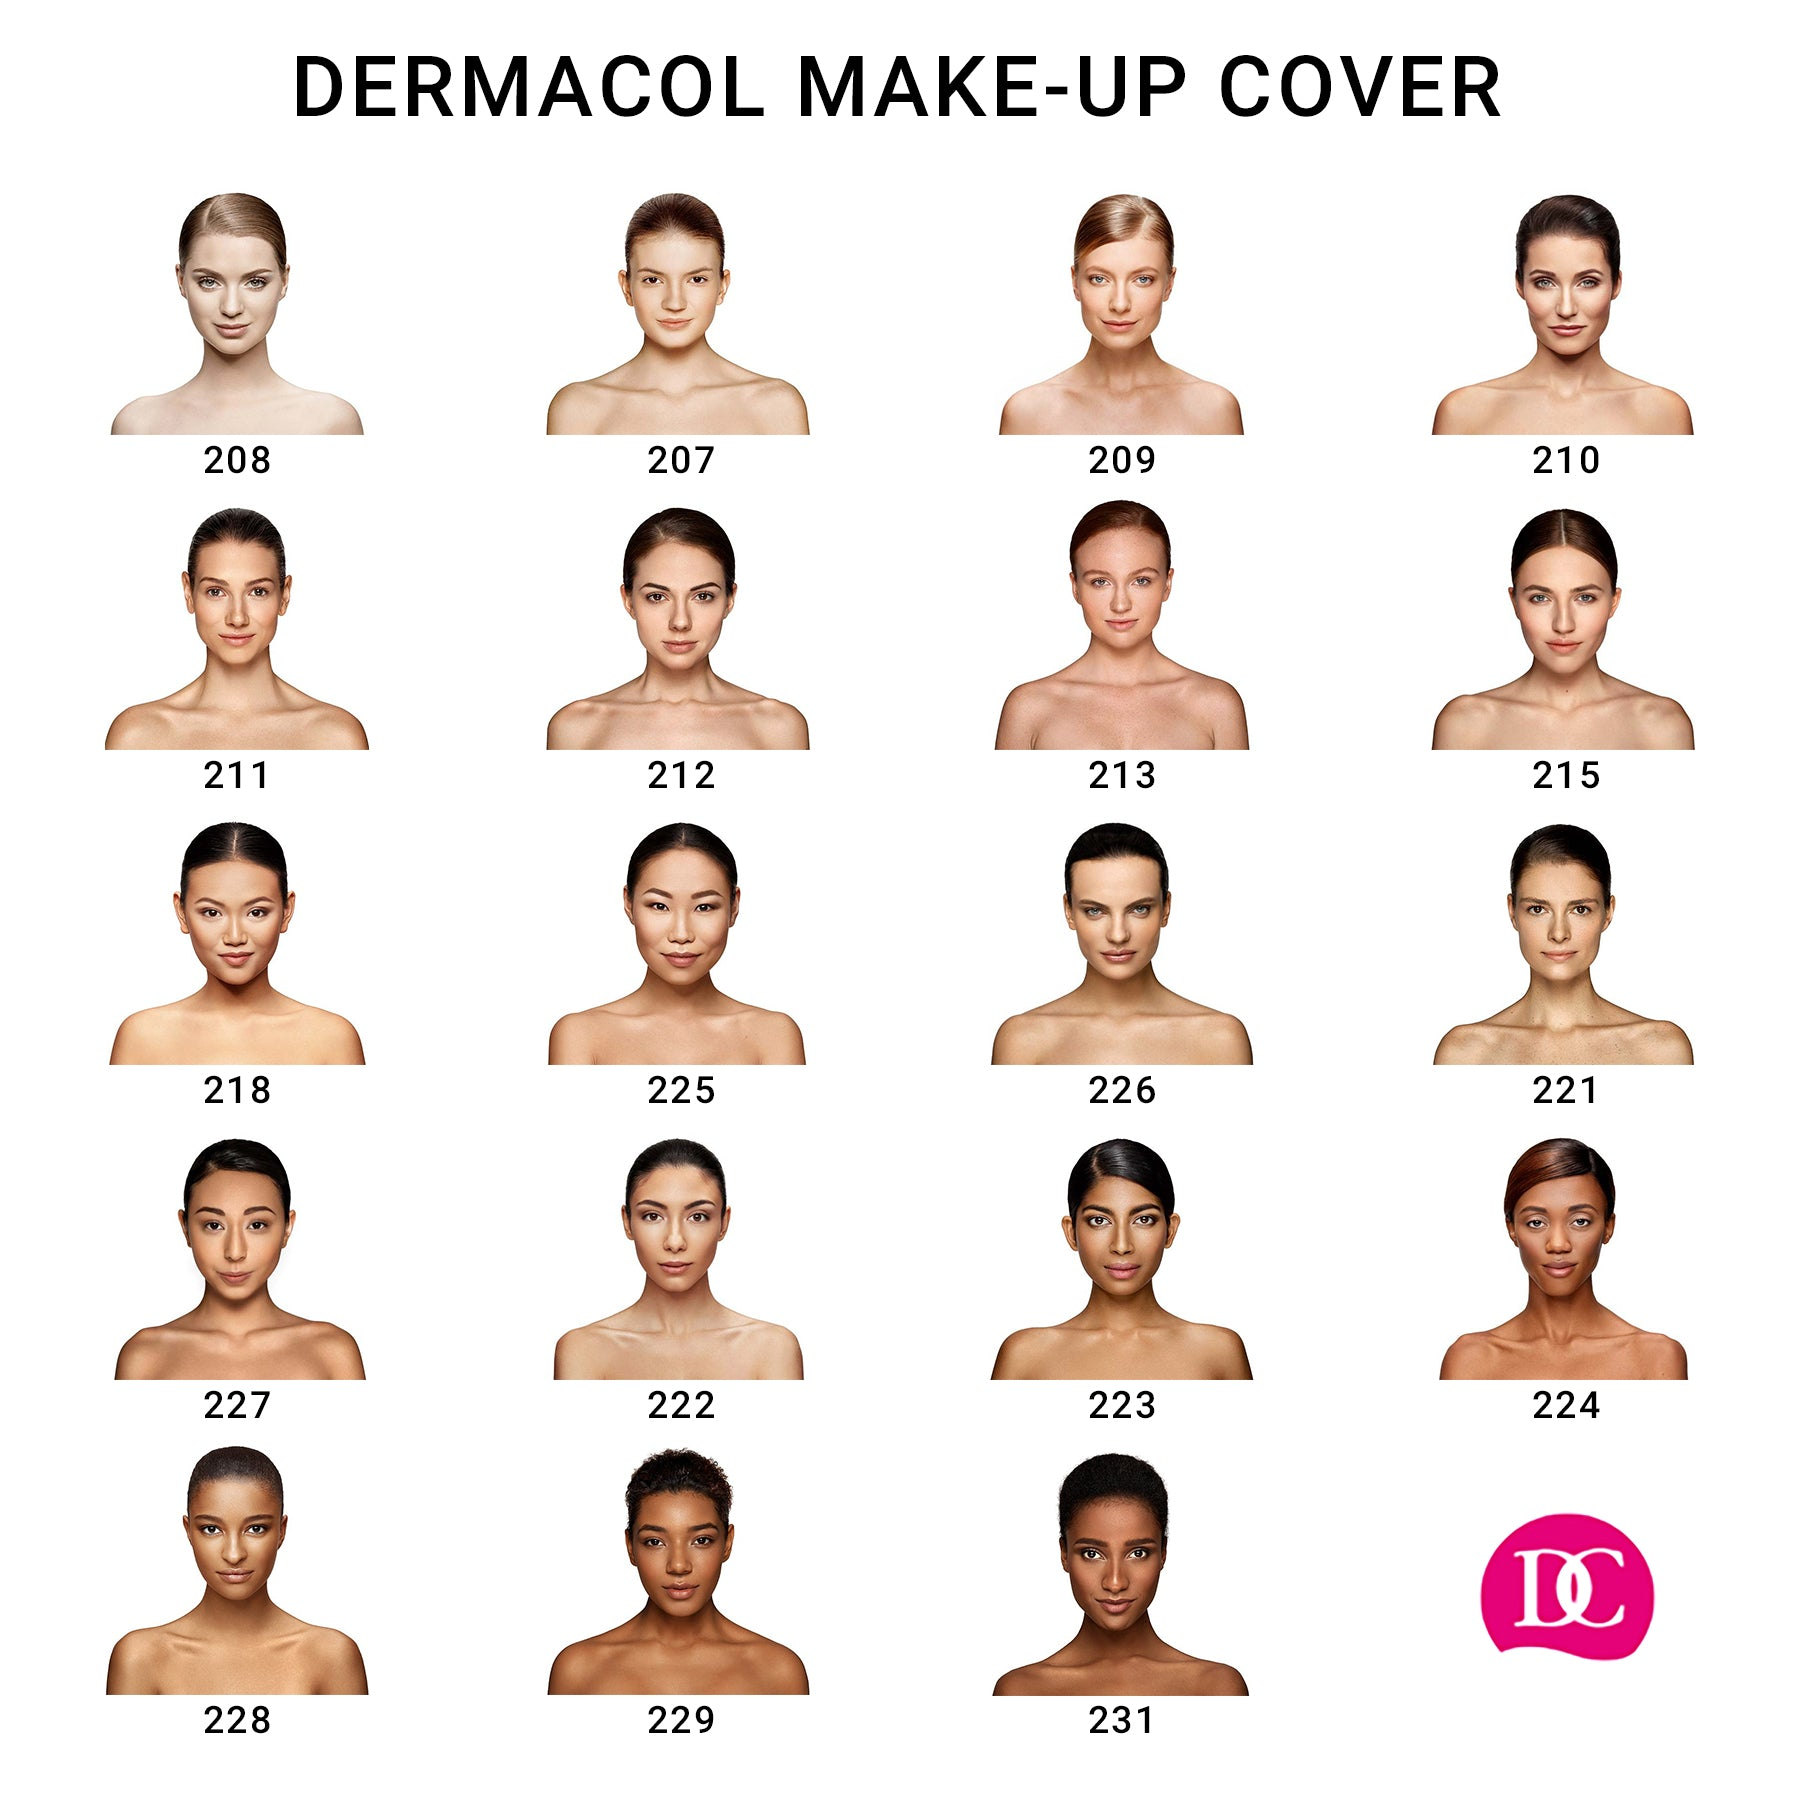 dermacol_makeup_cover_face_chart